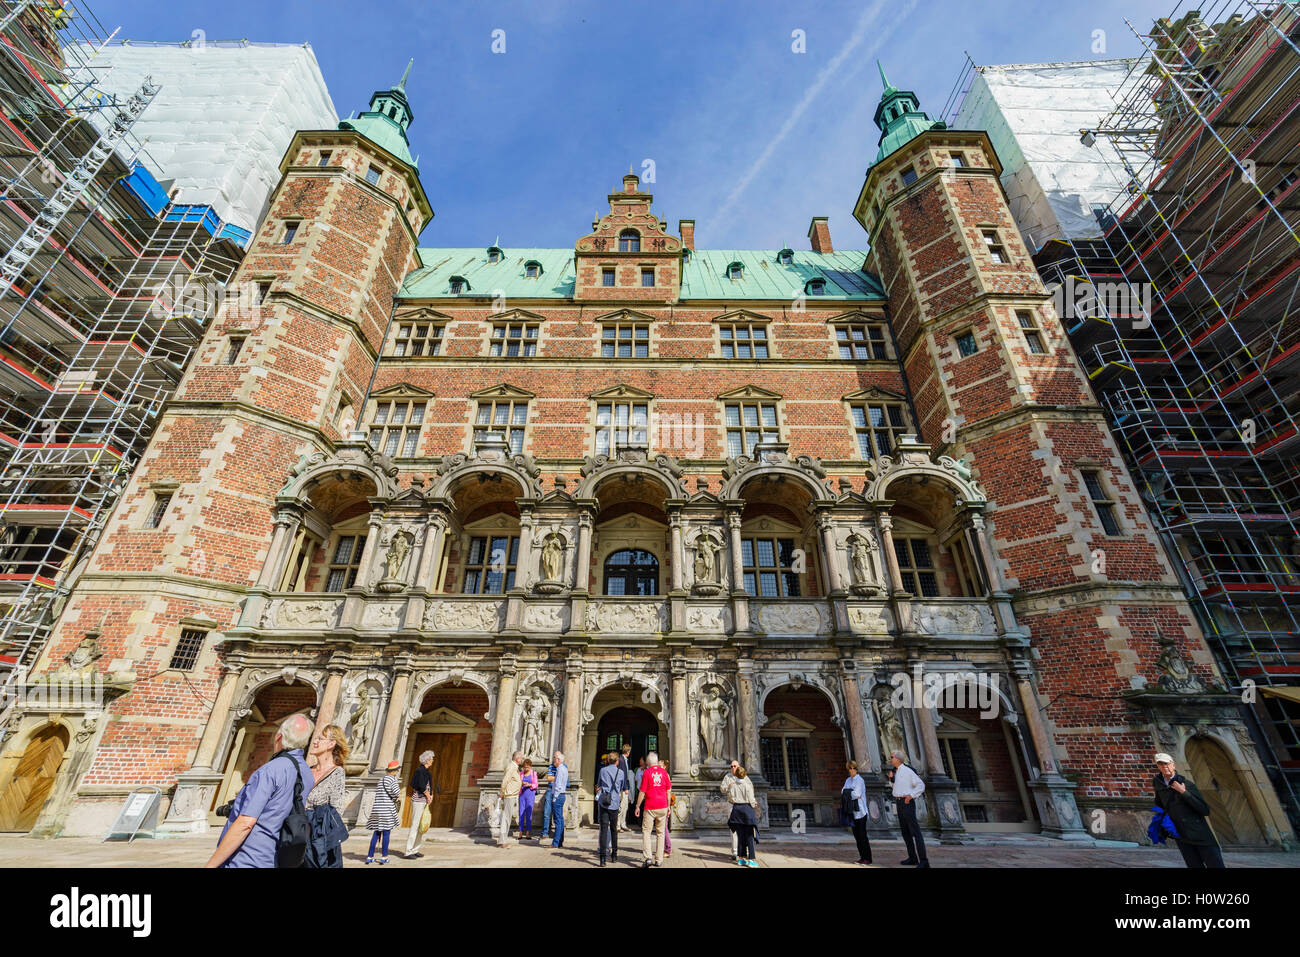 Hillerod, AUG 28: Superb Frederiksborg Castle on AUG 28, 2016 at Hillerod, Denmark - Stock Image